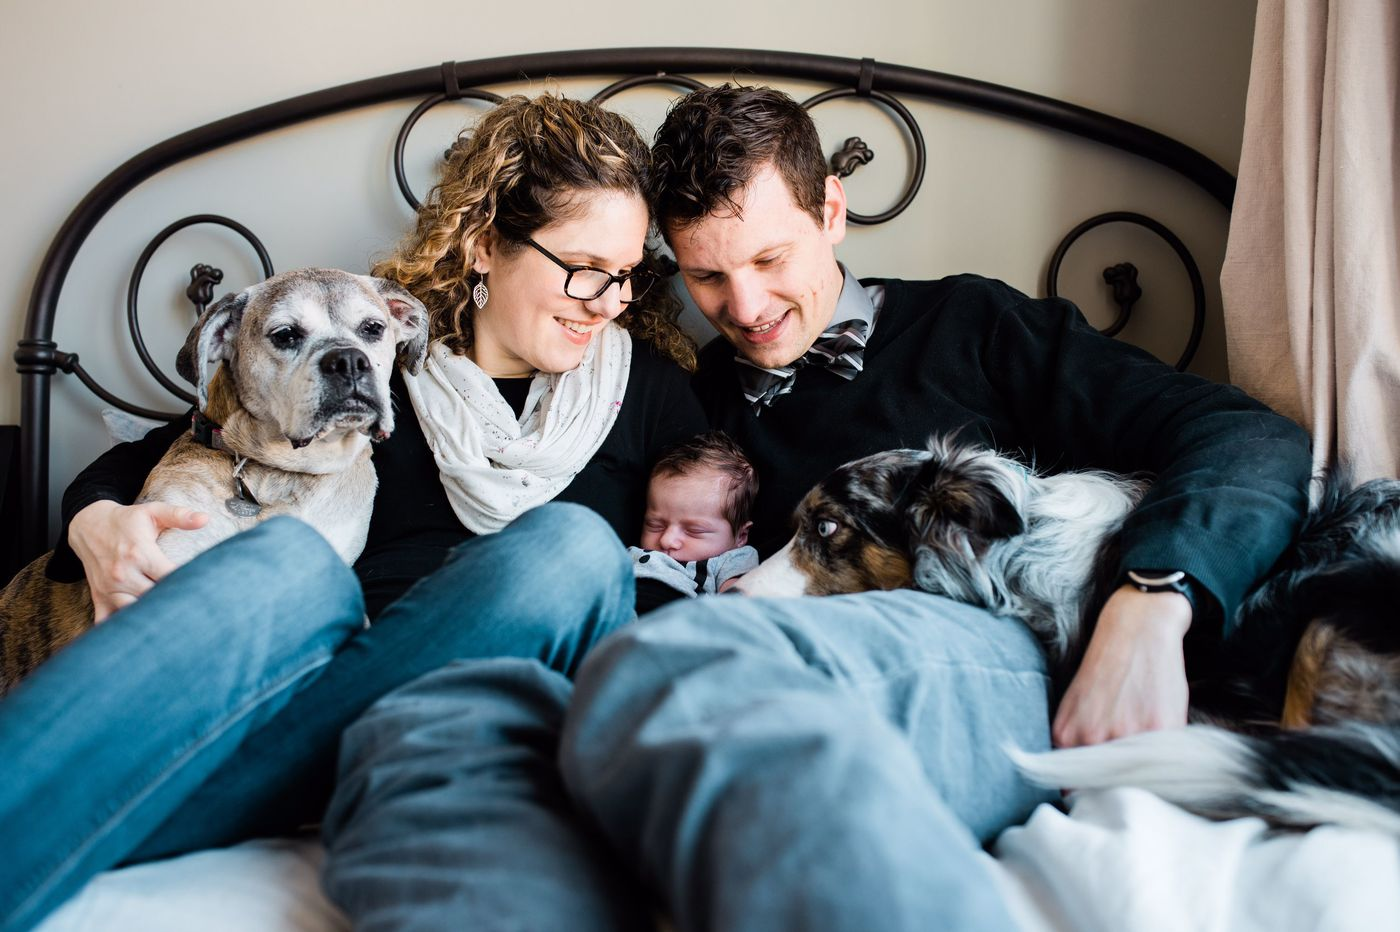 For Sophie Foster Fink and Bryan Nichols, it's all a collaborative effort